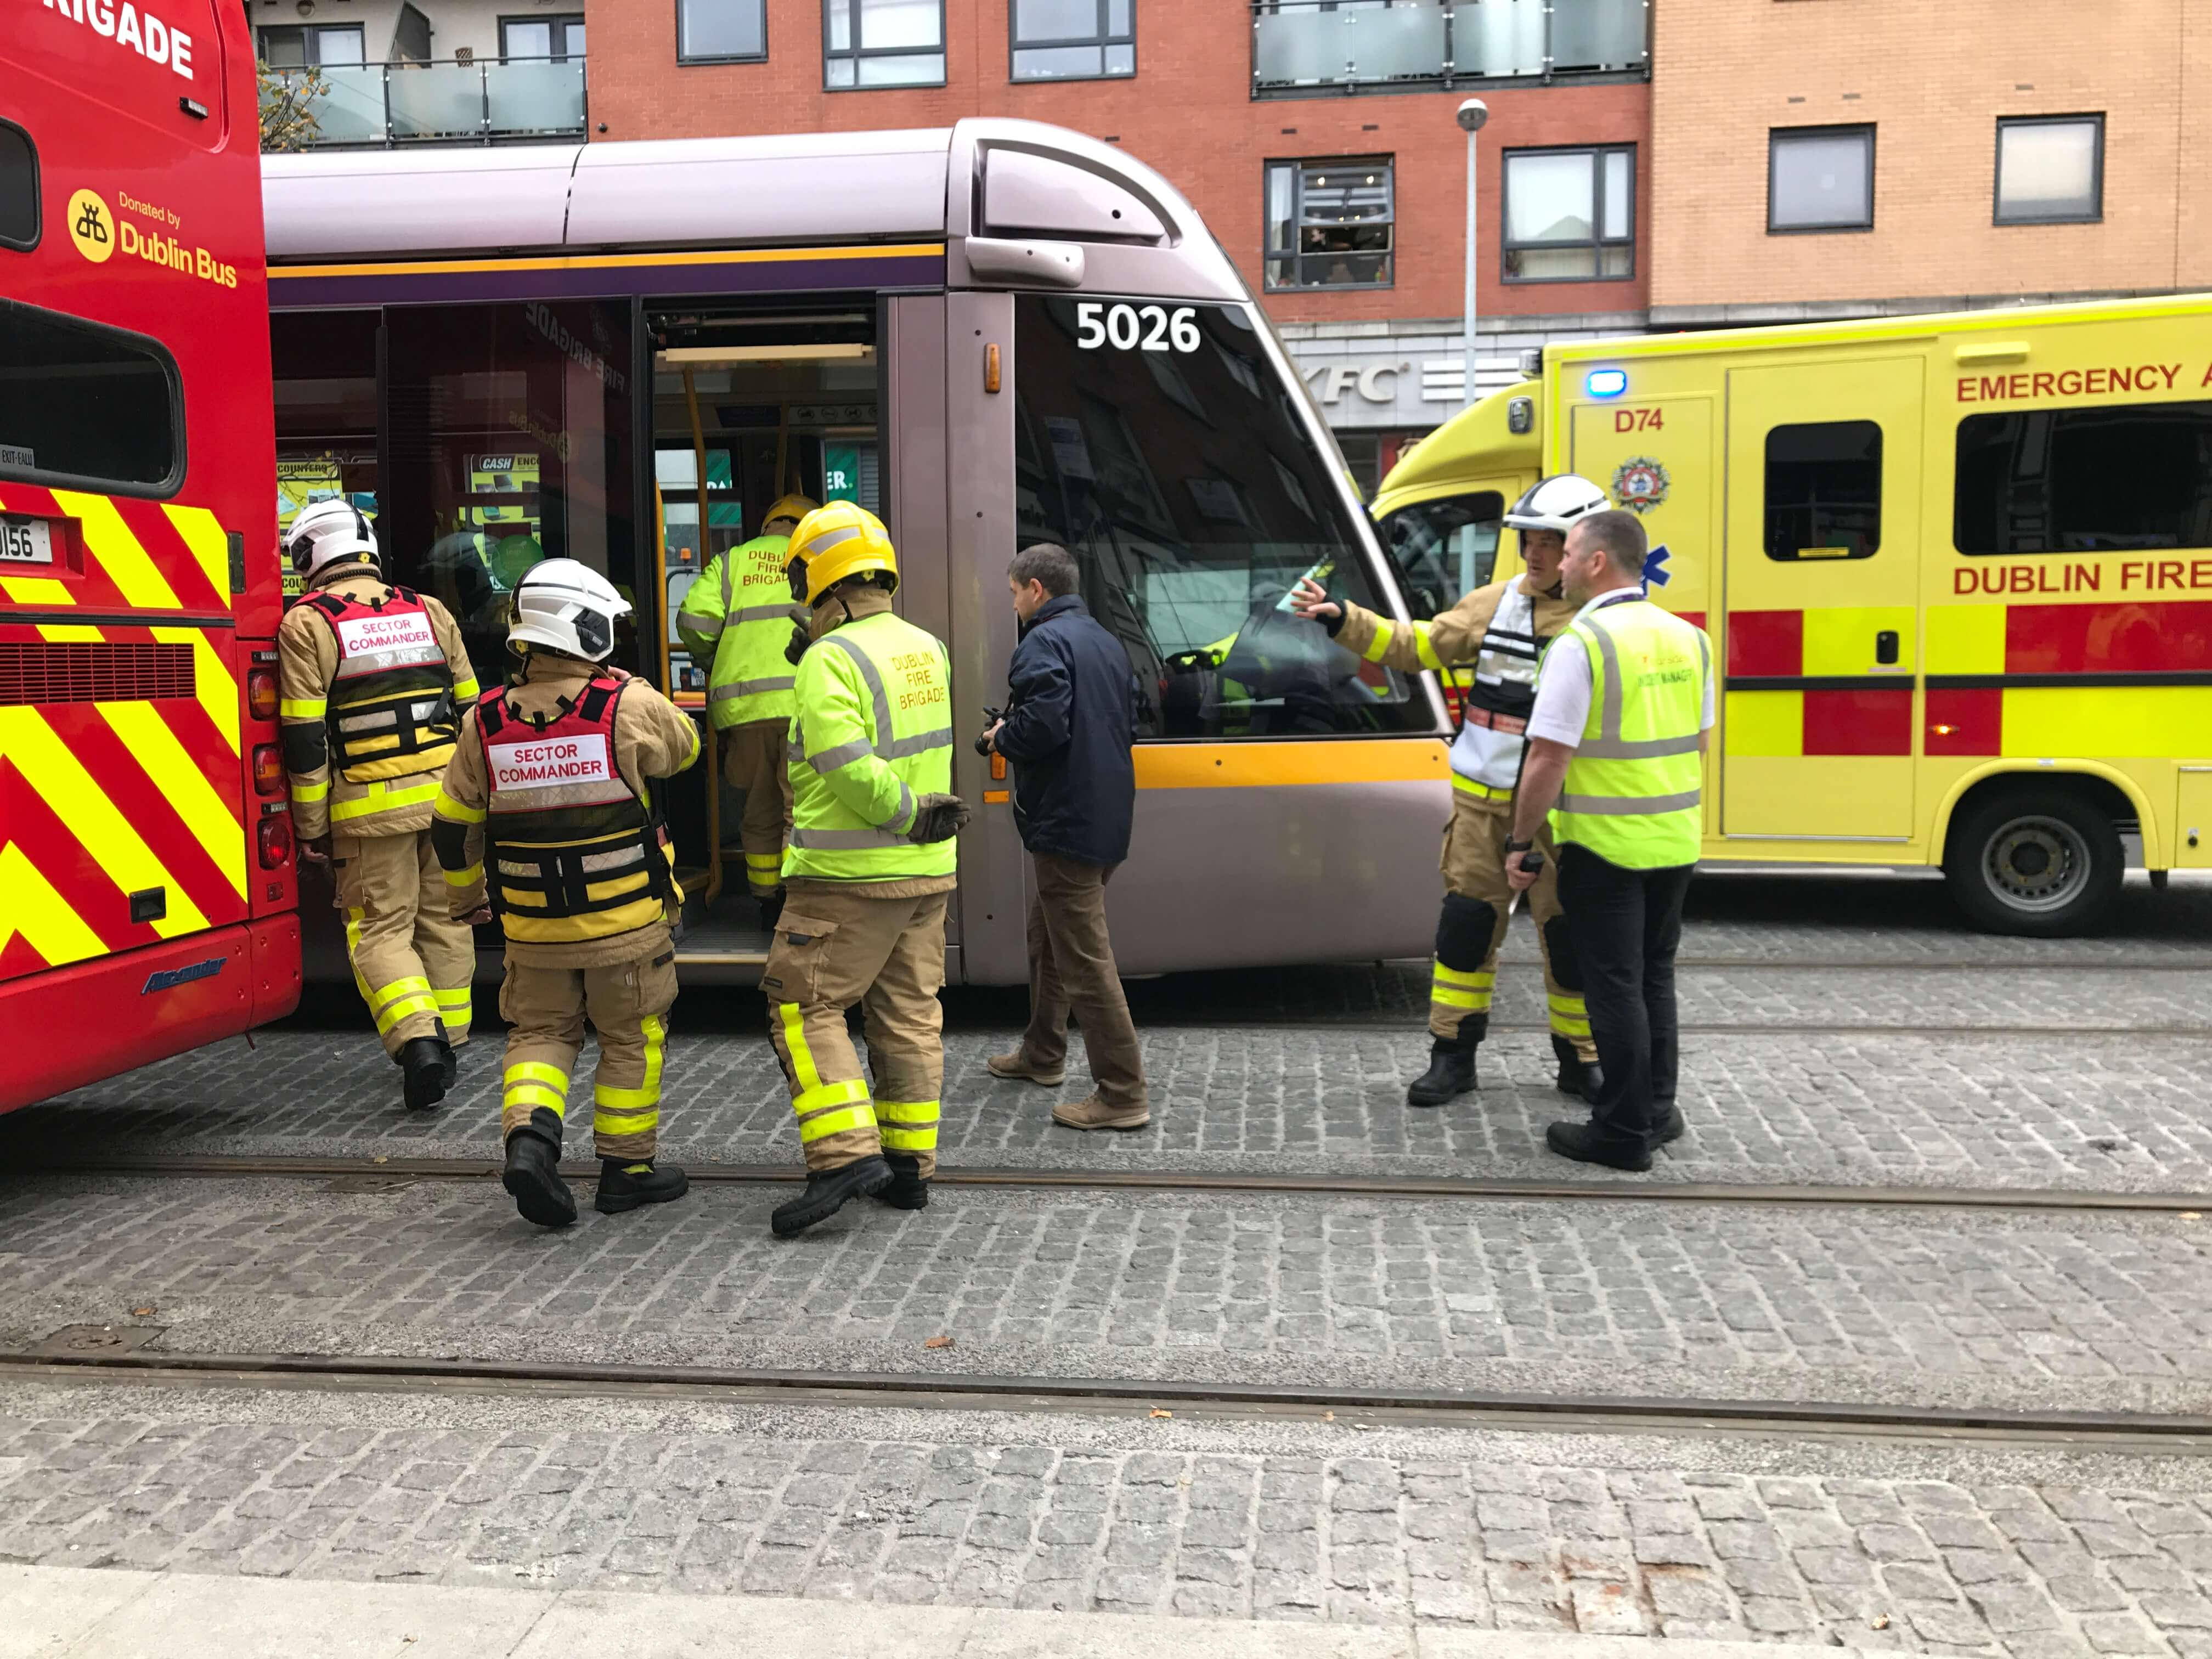 Dublin Fire Brigade take part in a training exercise with Luas and Dublin Bus. Photo credit: Bronwyn Molony.